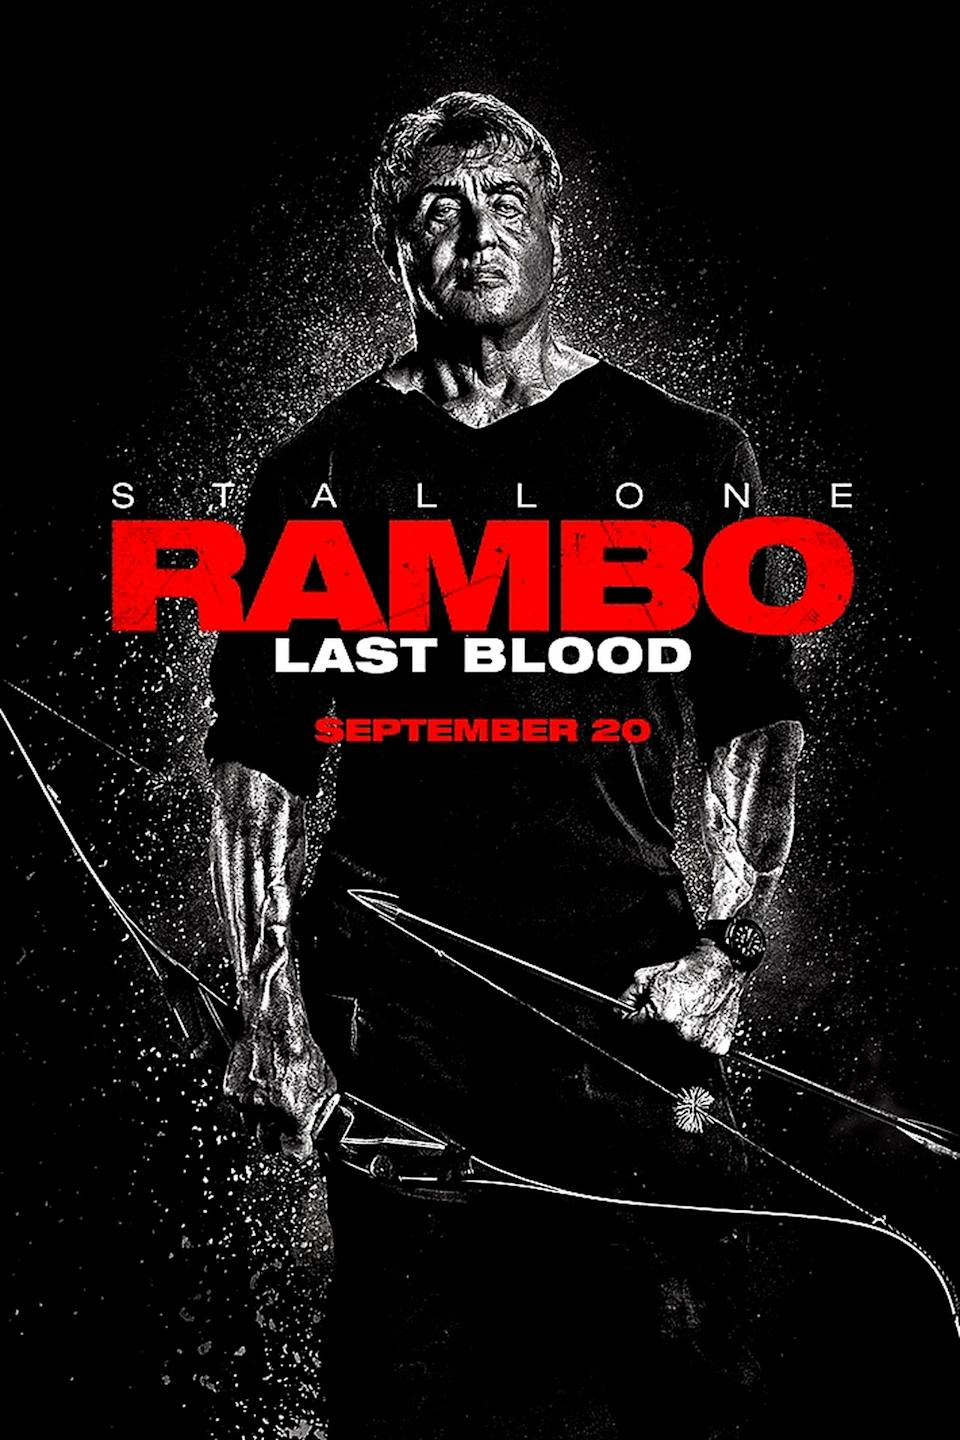 Sylvester Stallone brought John Rambo back for one last mission. (Lionsgate)